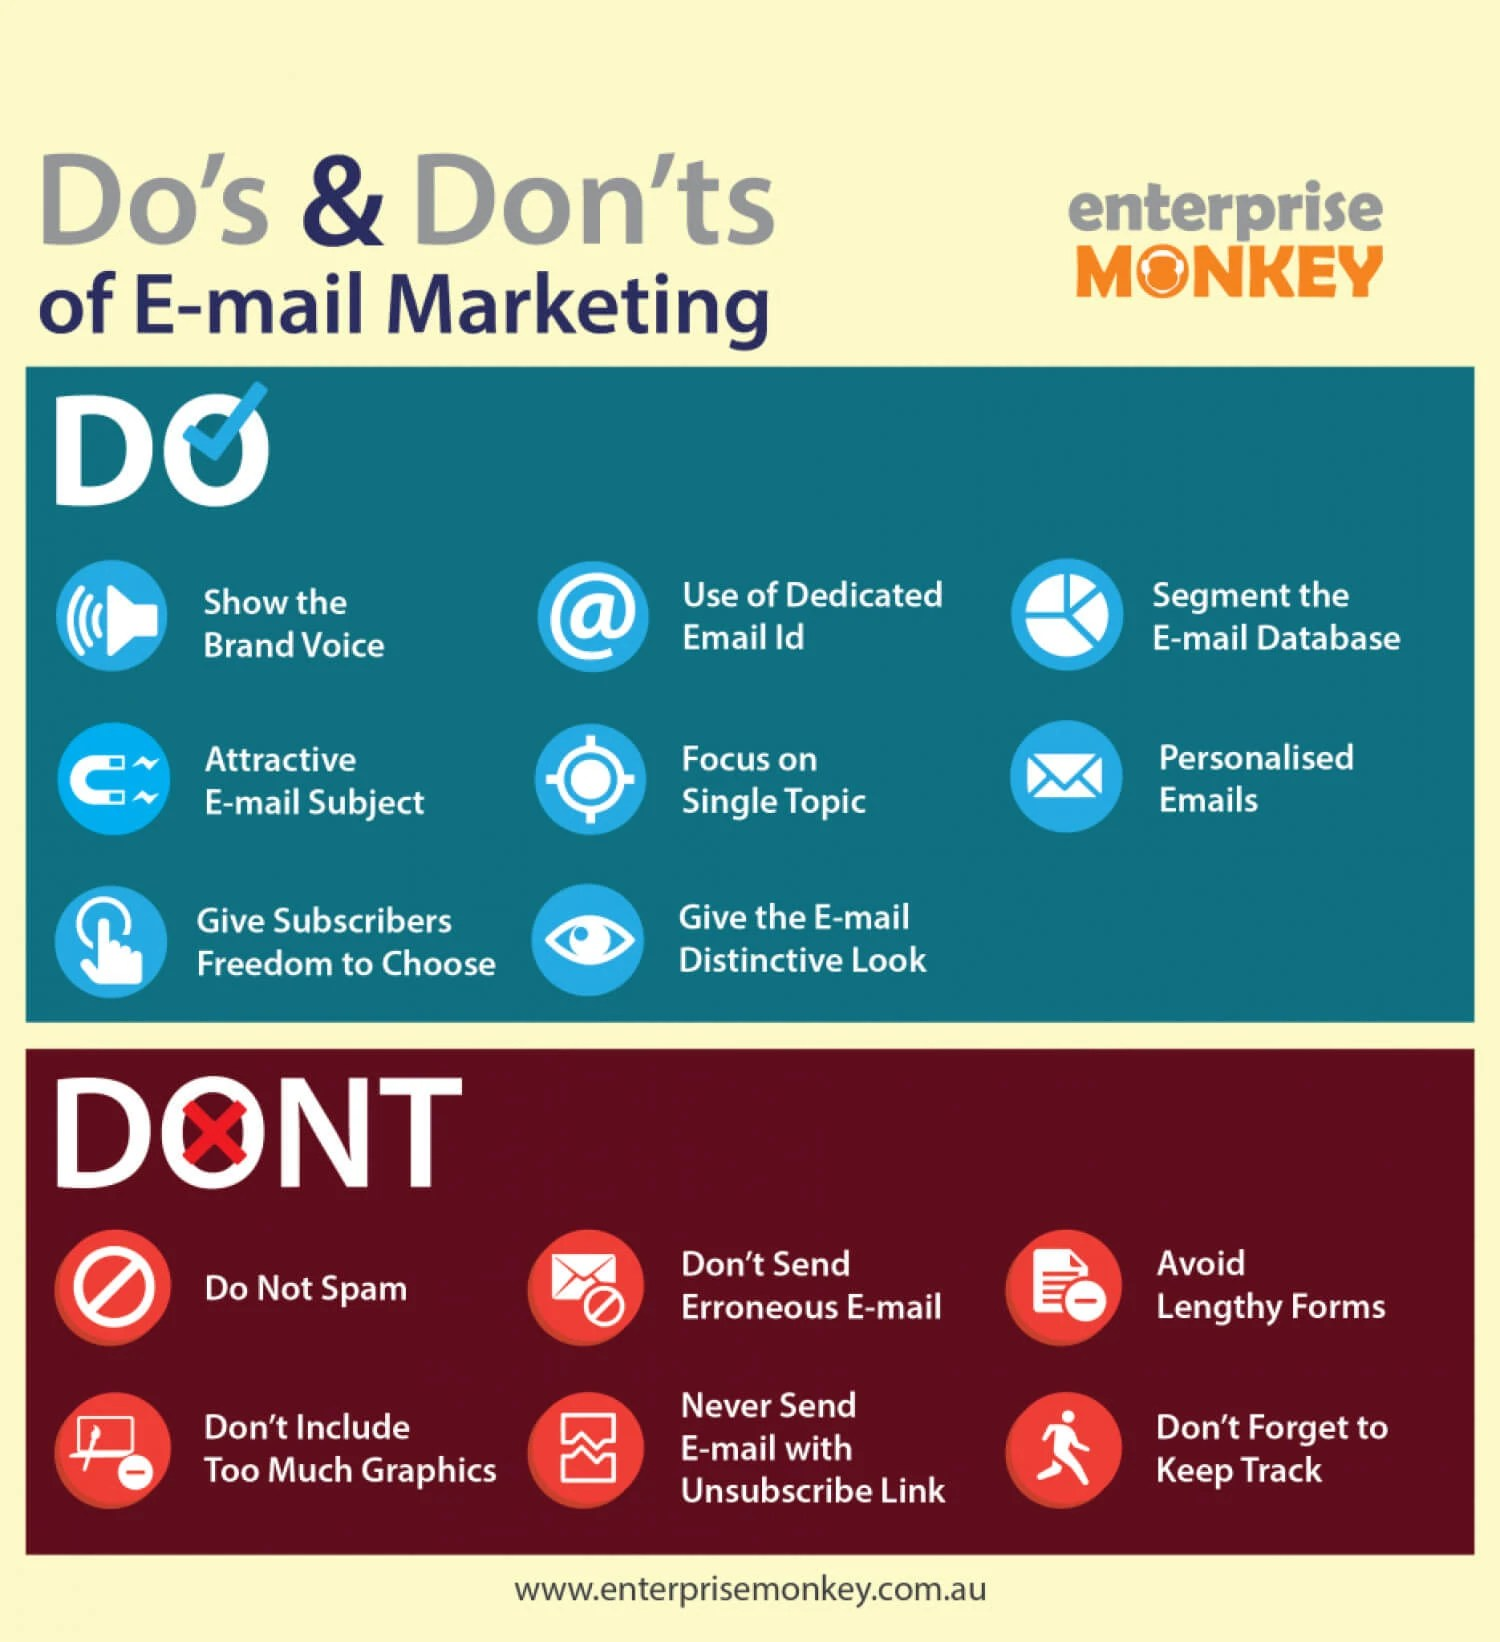 Dos-and-donts-of-email-marketing 56b48cb6739d1 w1500 jpg